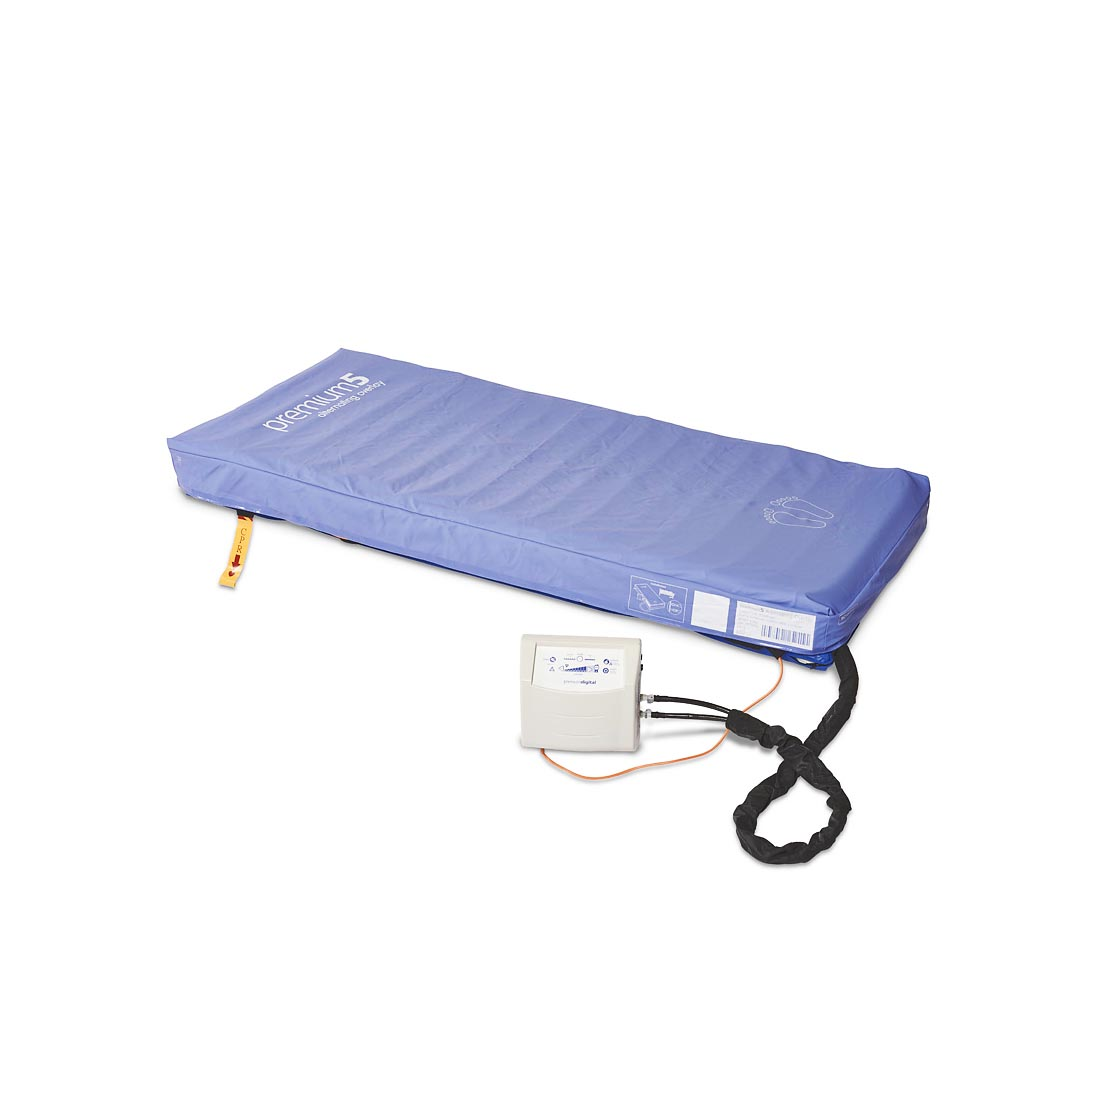 Adjustable Air Mattress For Hospital Beds